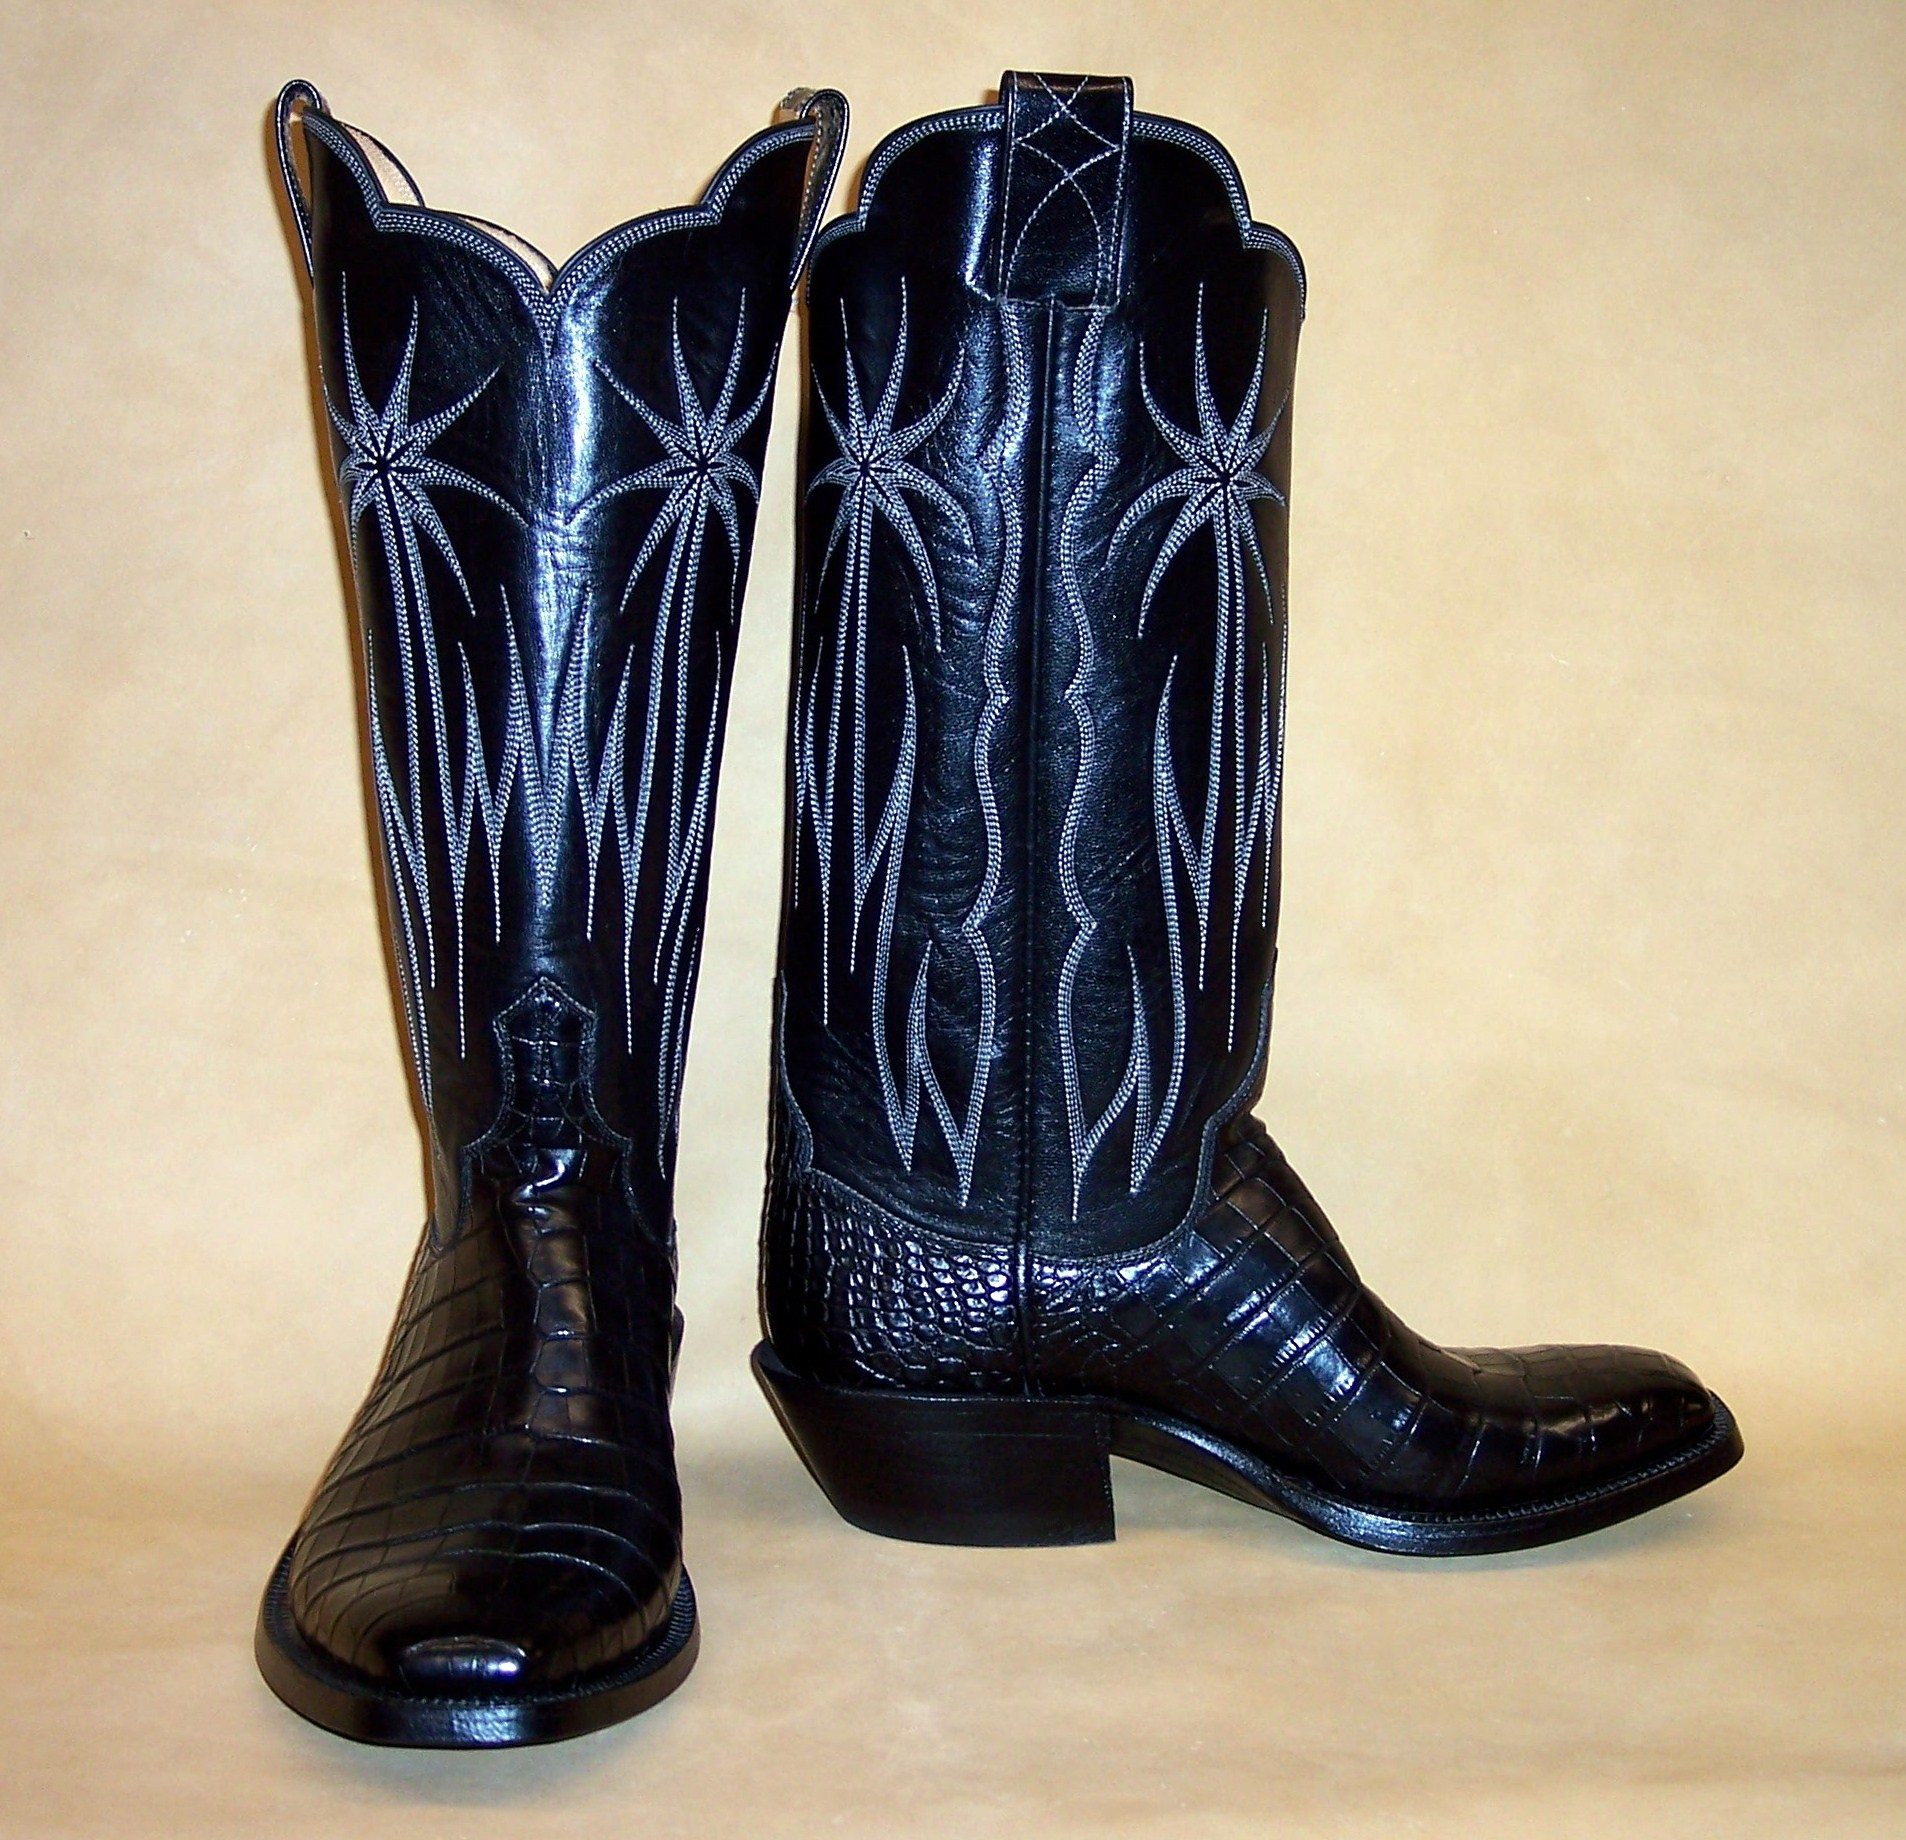 Picture Gallery 187 Mike Vaughn Handmade Boots